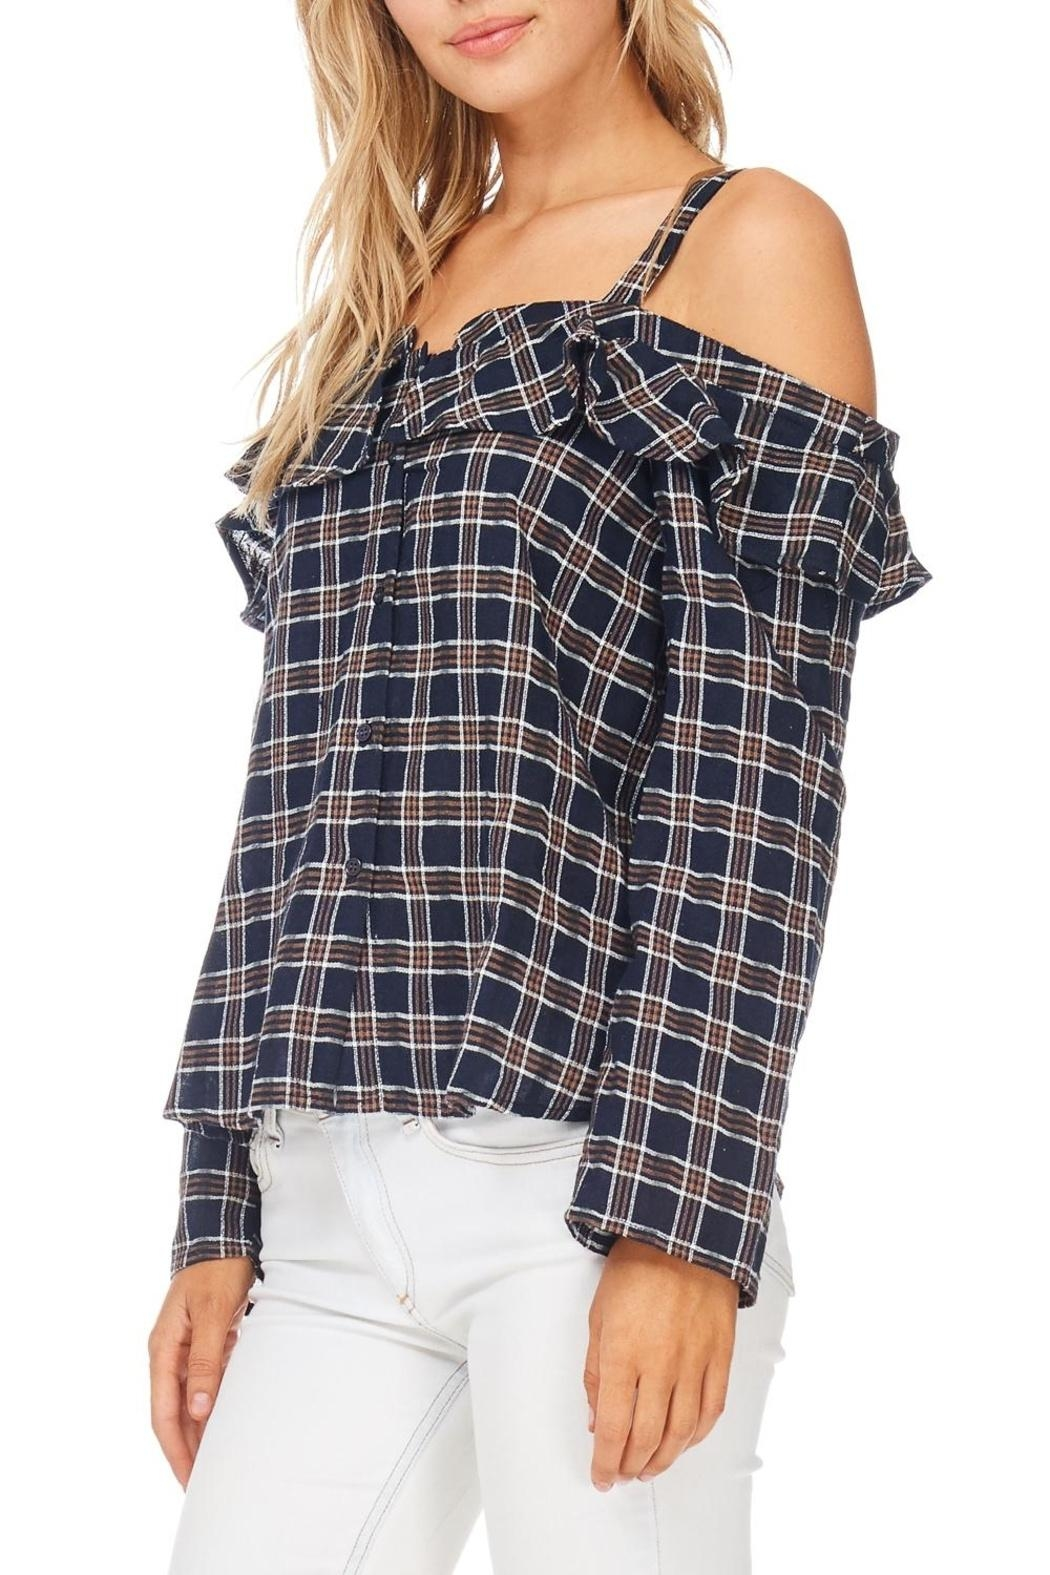 LoveRiche Plaid Cold Shoulder Top - Front Full Image